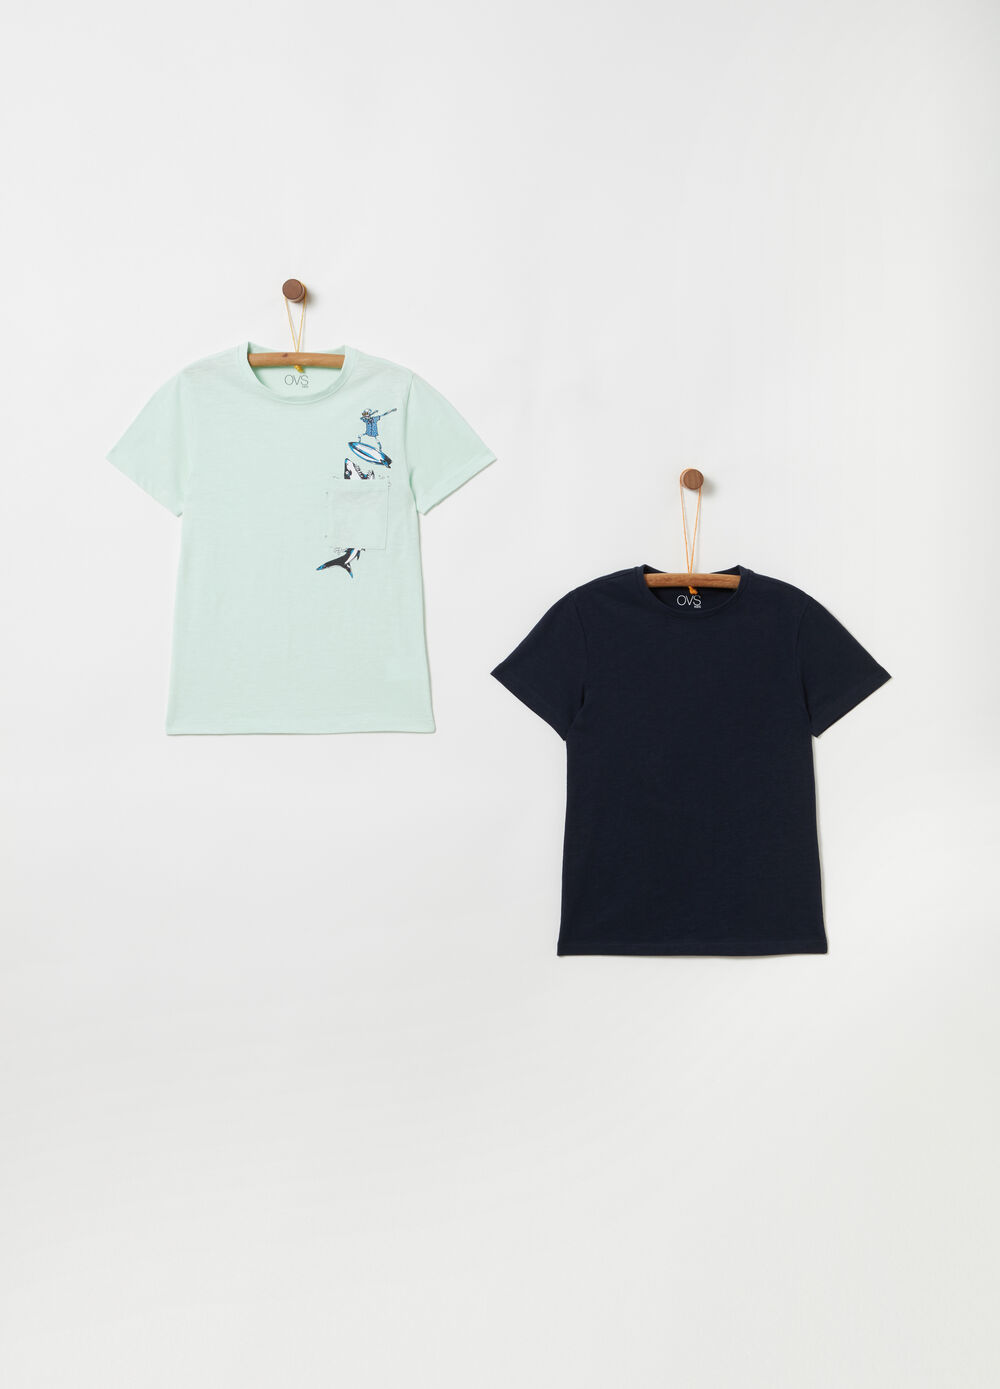 Two-pack T-shirts with ribbing, pocket and print